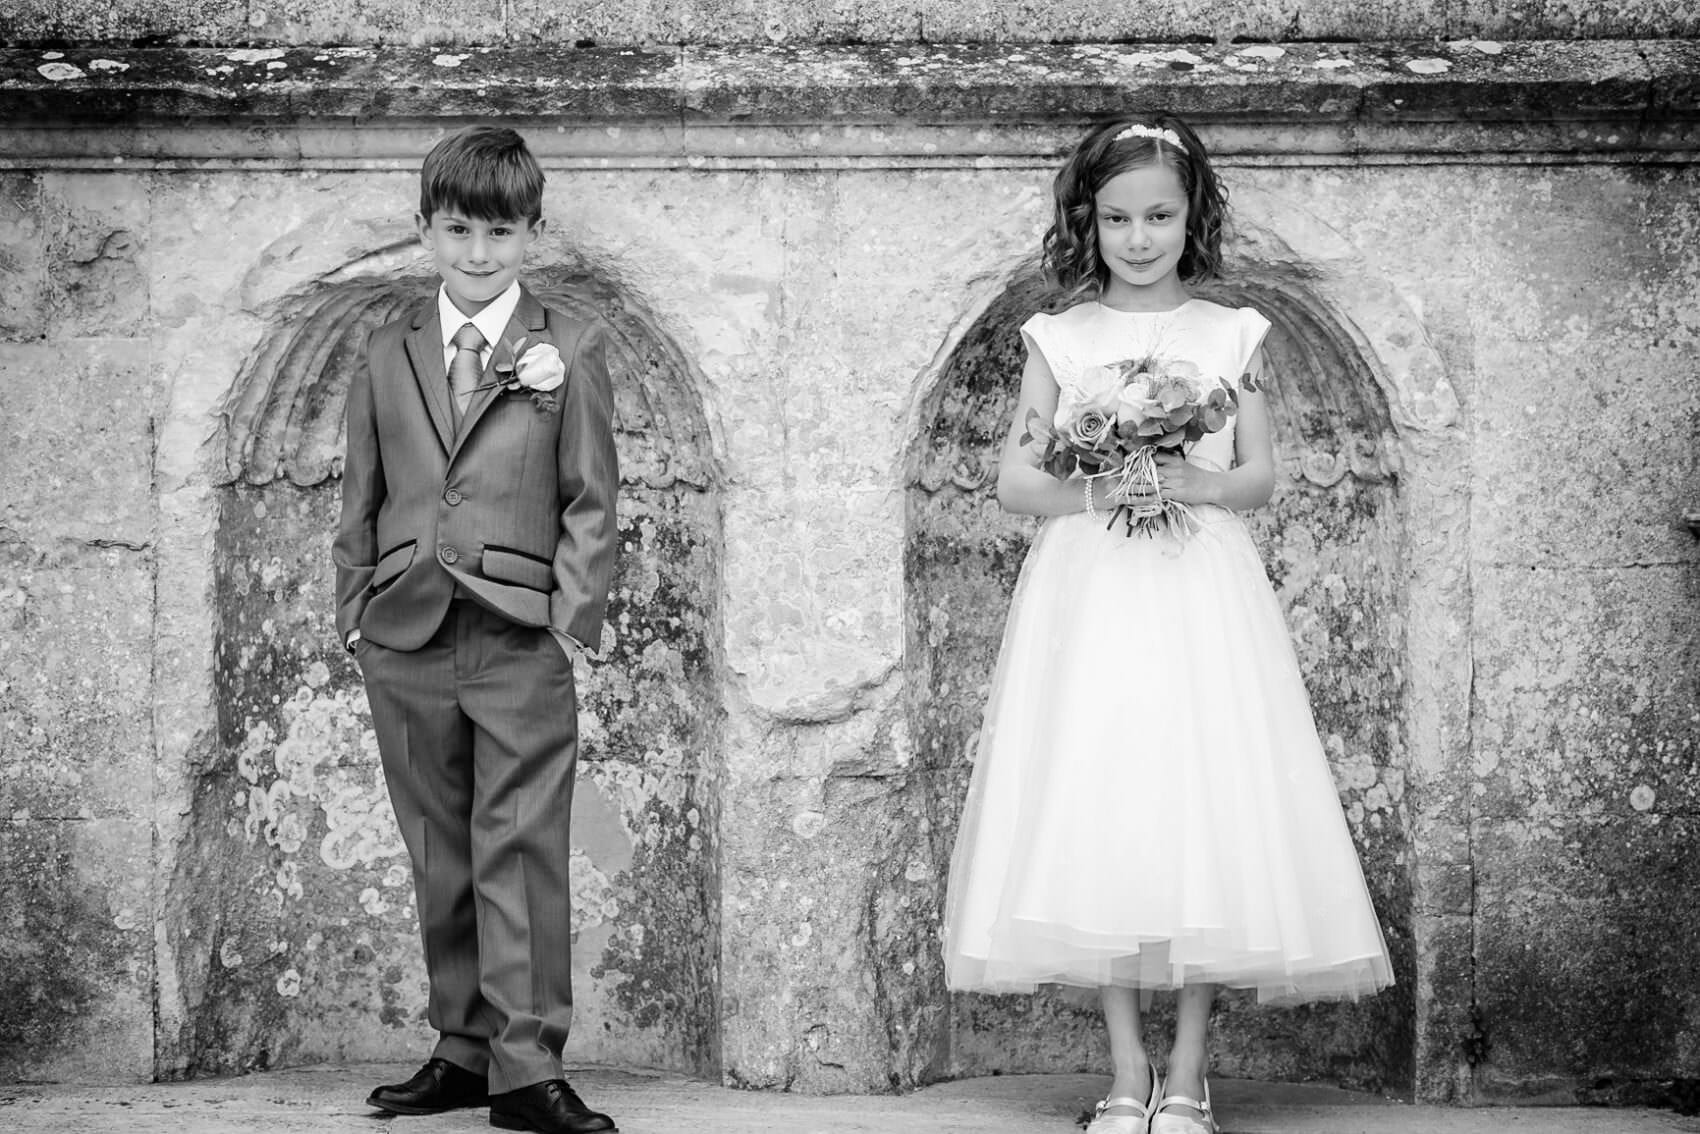 Pageboy and flower girl pose infront of lulworth castle in black and white